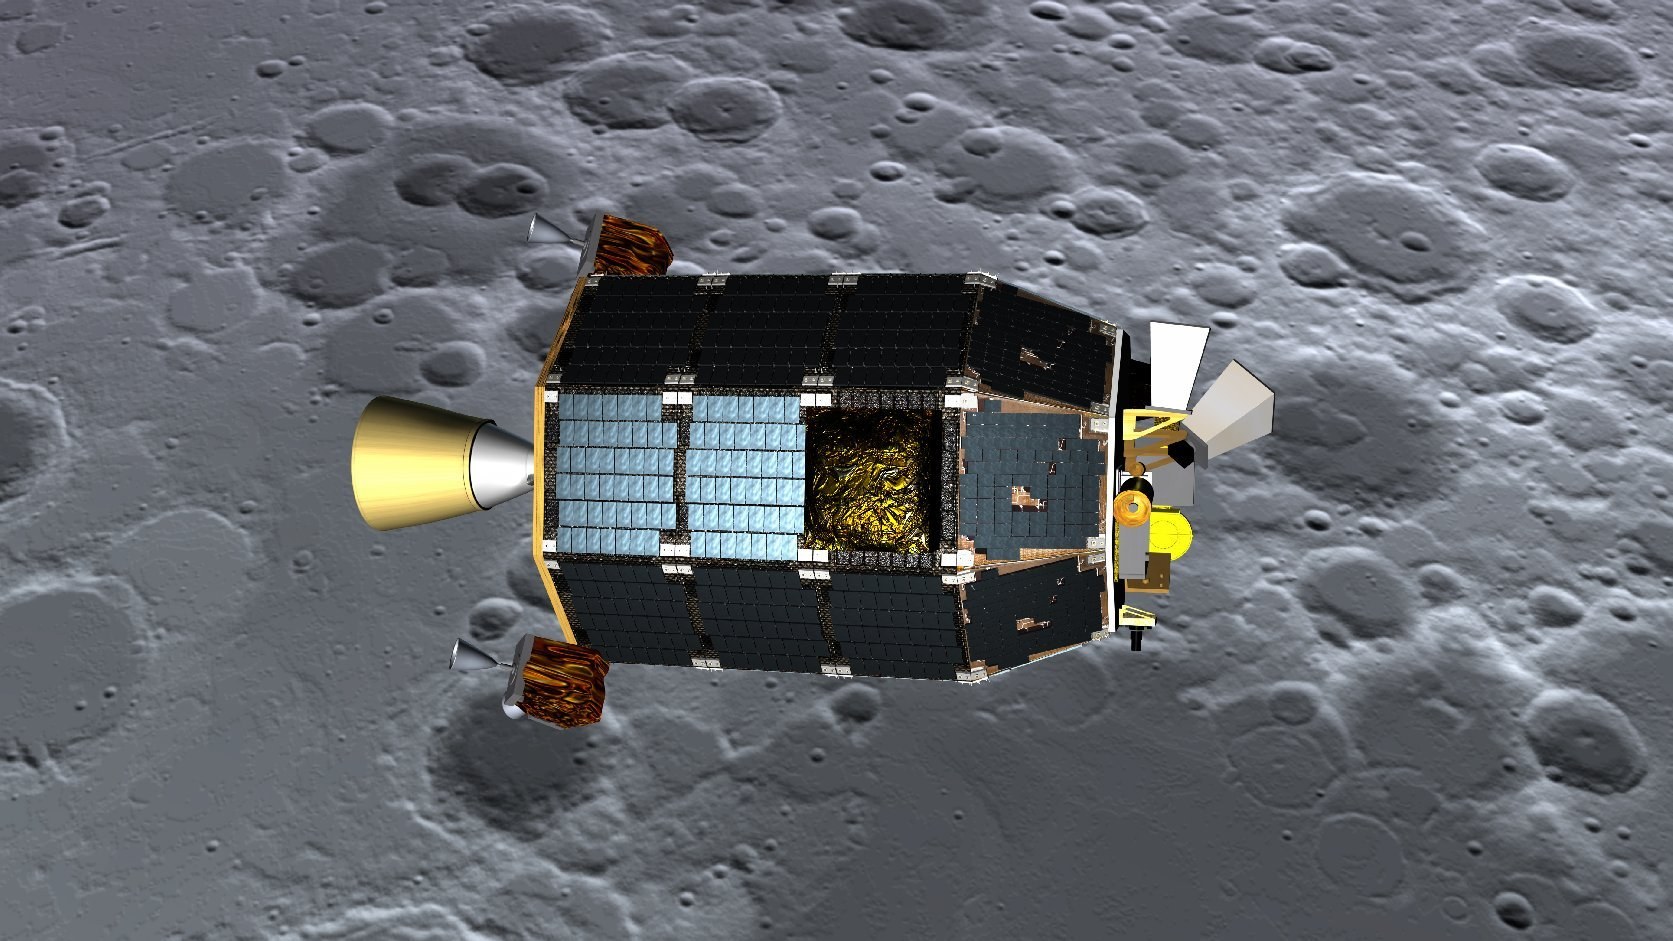 An artist's concept of NASA's Lunar Atmosphere and Dust Environment Explorer (LADEE) spacecraft seen orbiting near the surface of the moon. Image credit: NASA Ames / Dana Berry